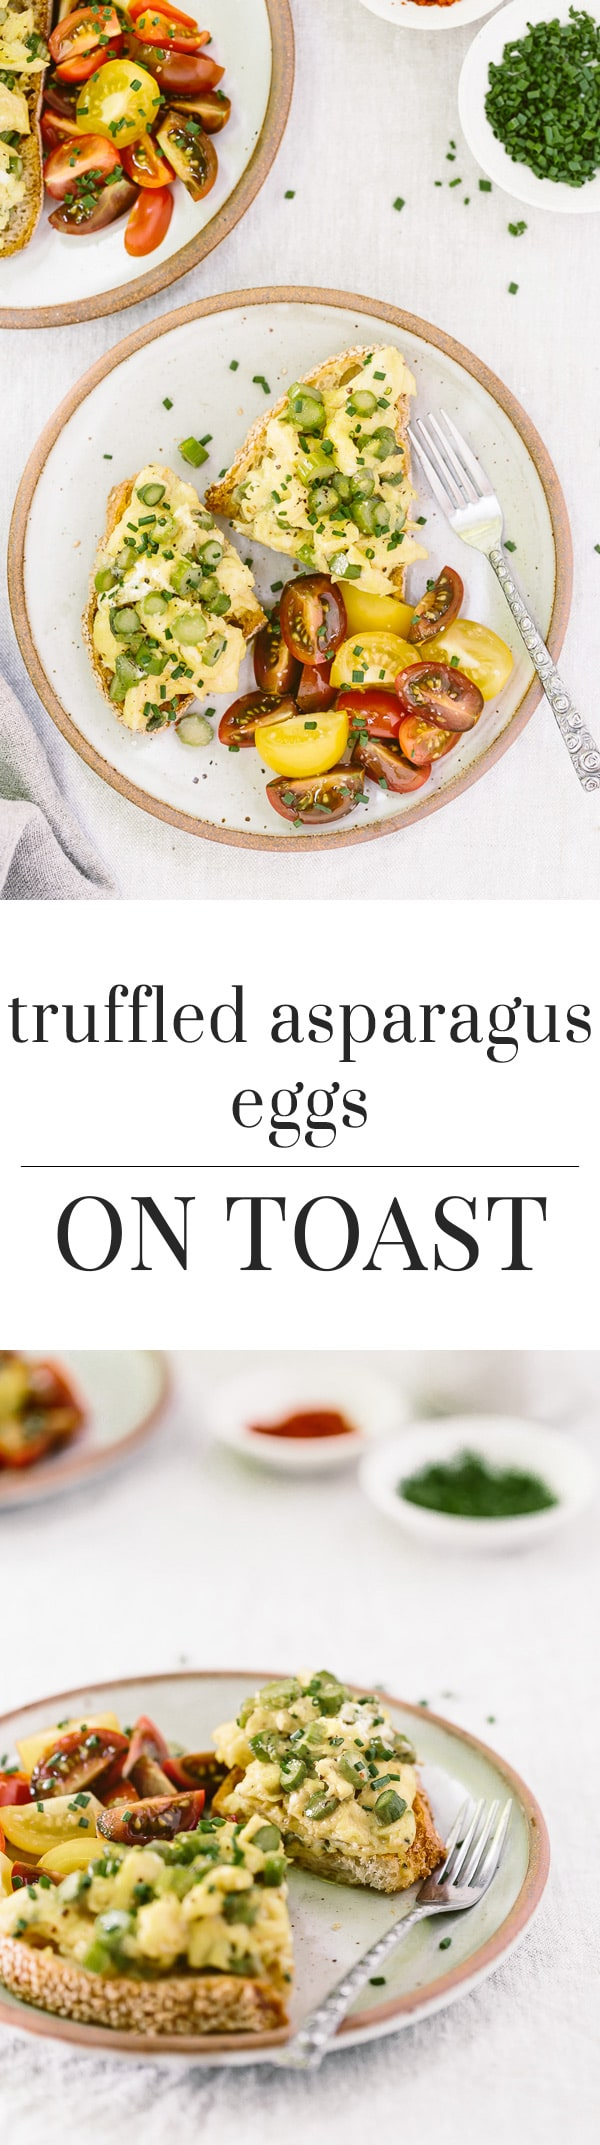 Truffled Asparagus Eggs on Toast Recipe: A quick and easy open-face sandwich recipe made with asparagus sautéed with truffle oil and mixed with eggs and goat cheese.